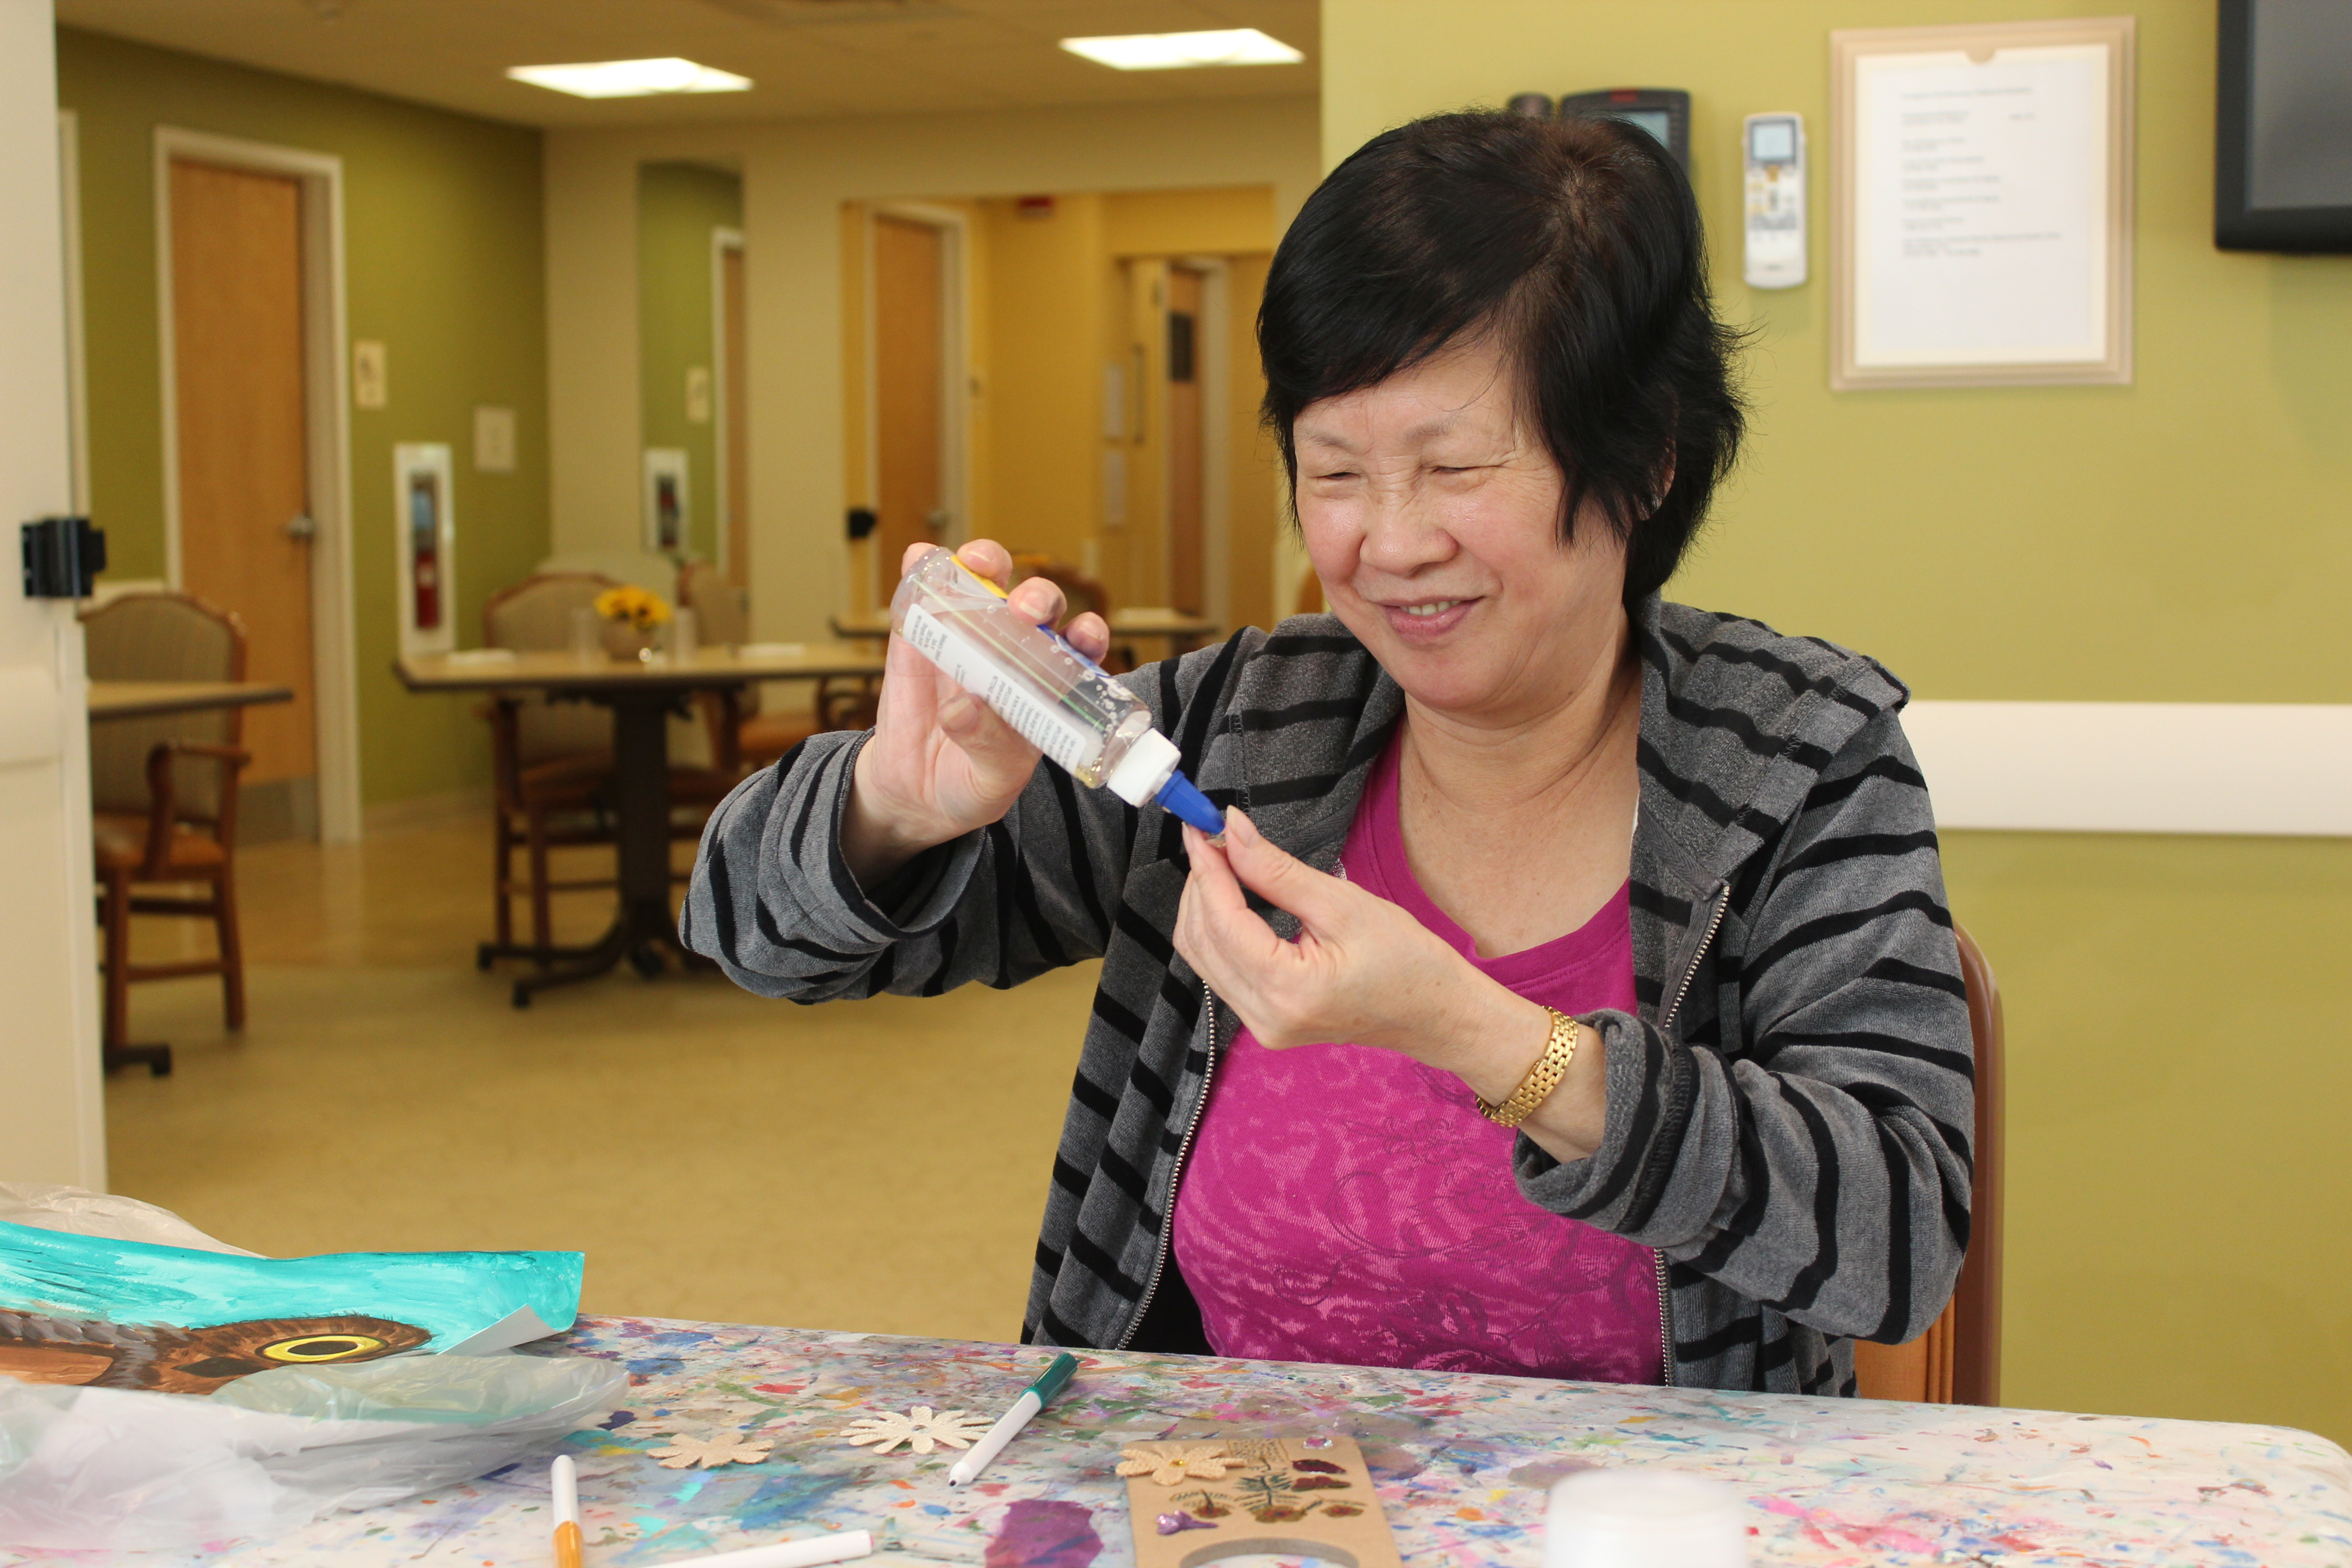 What Activities and Services are Part of Abramson Center's Medical Adult Day Program